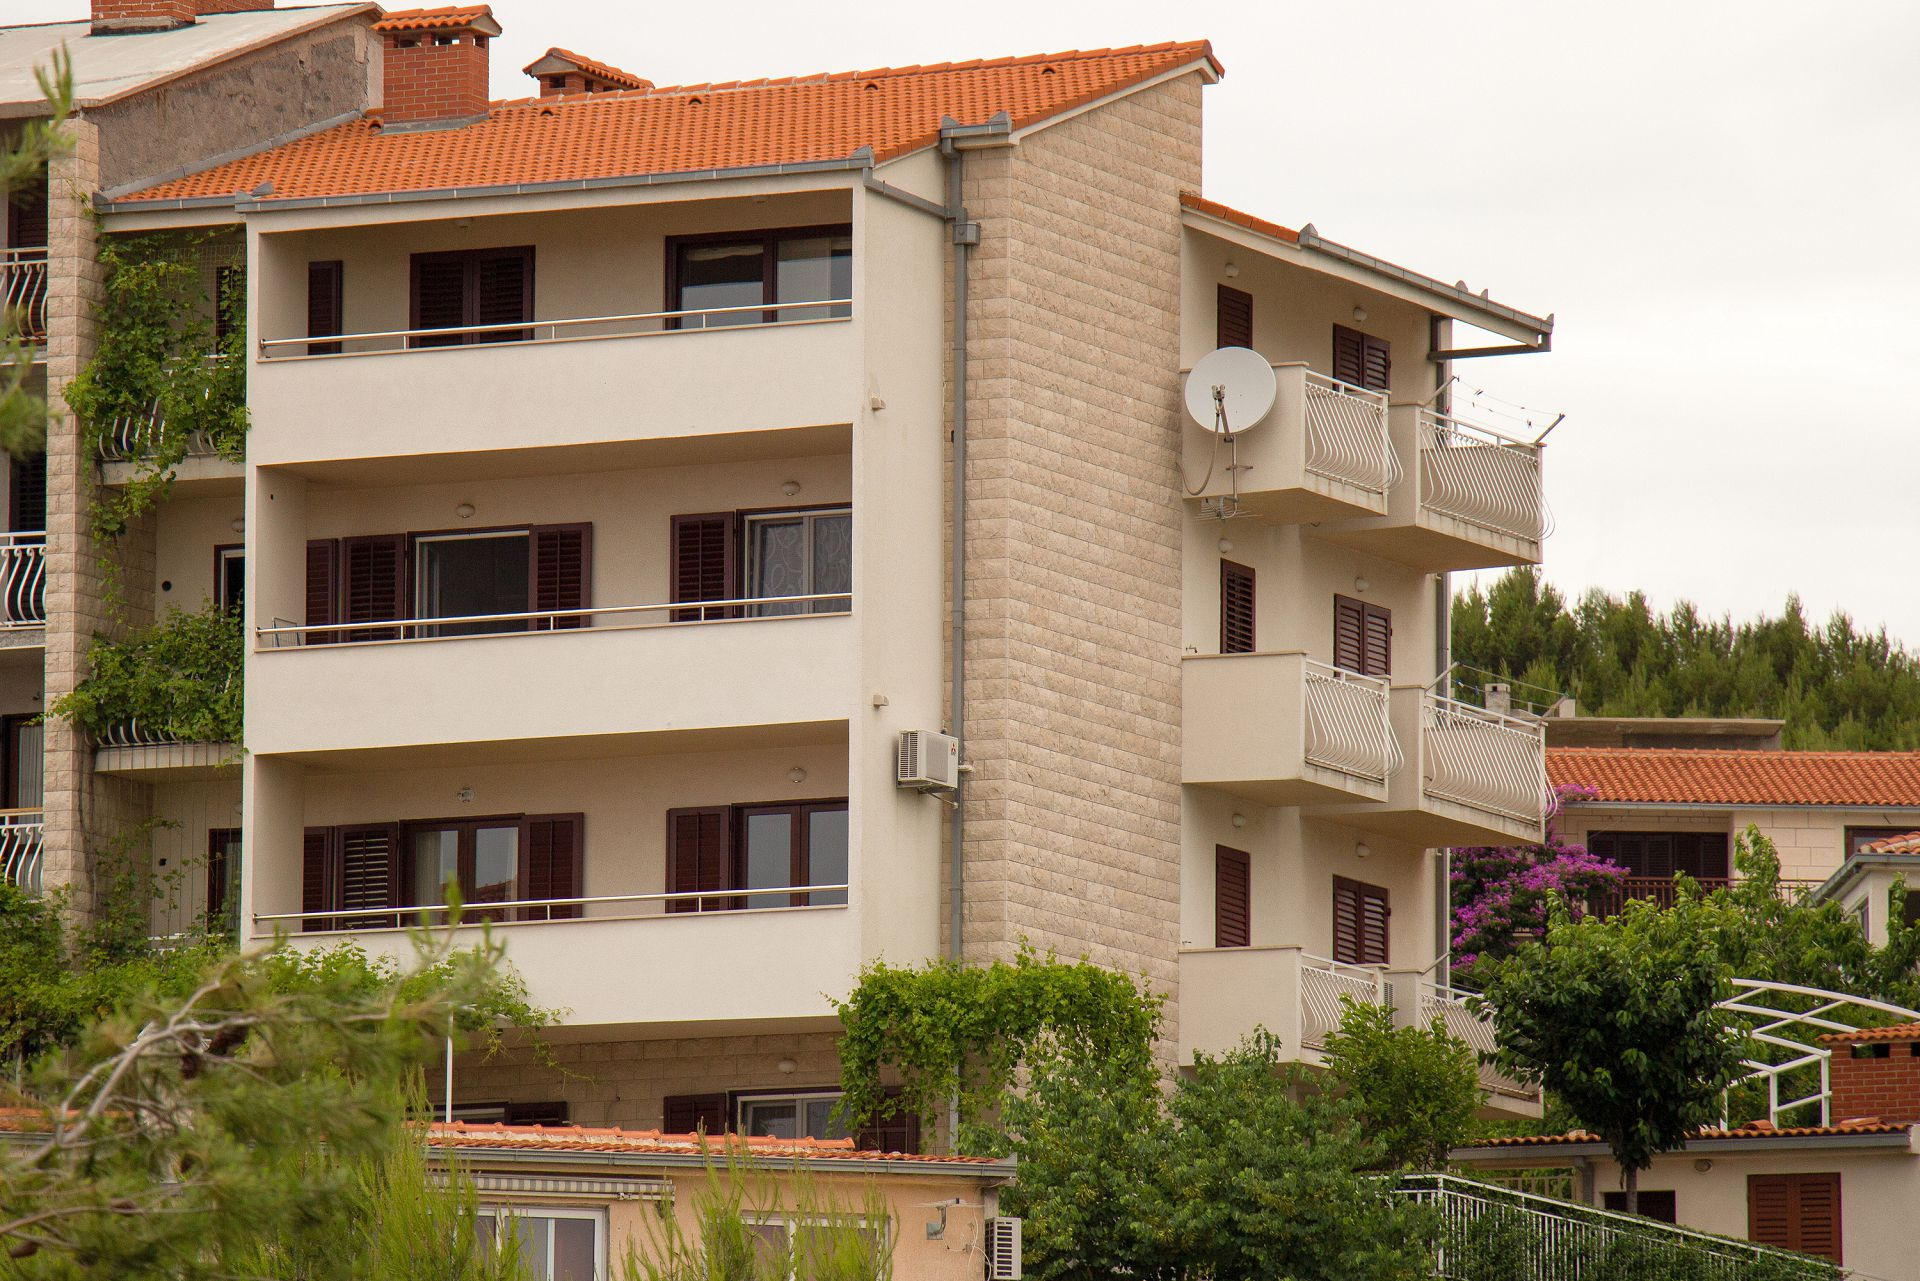 35611 - Podstrana - Apartments Croatia